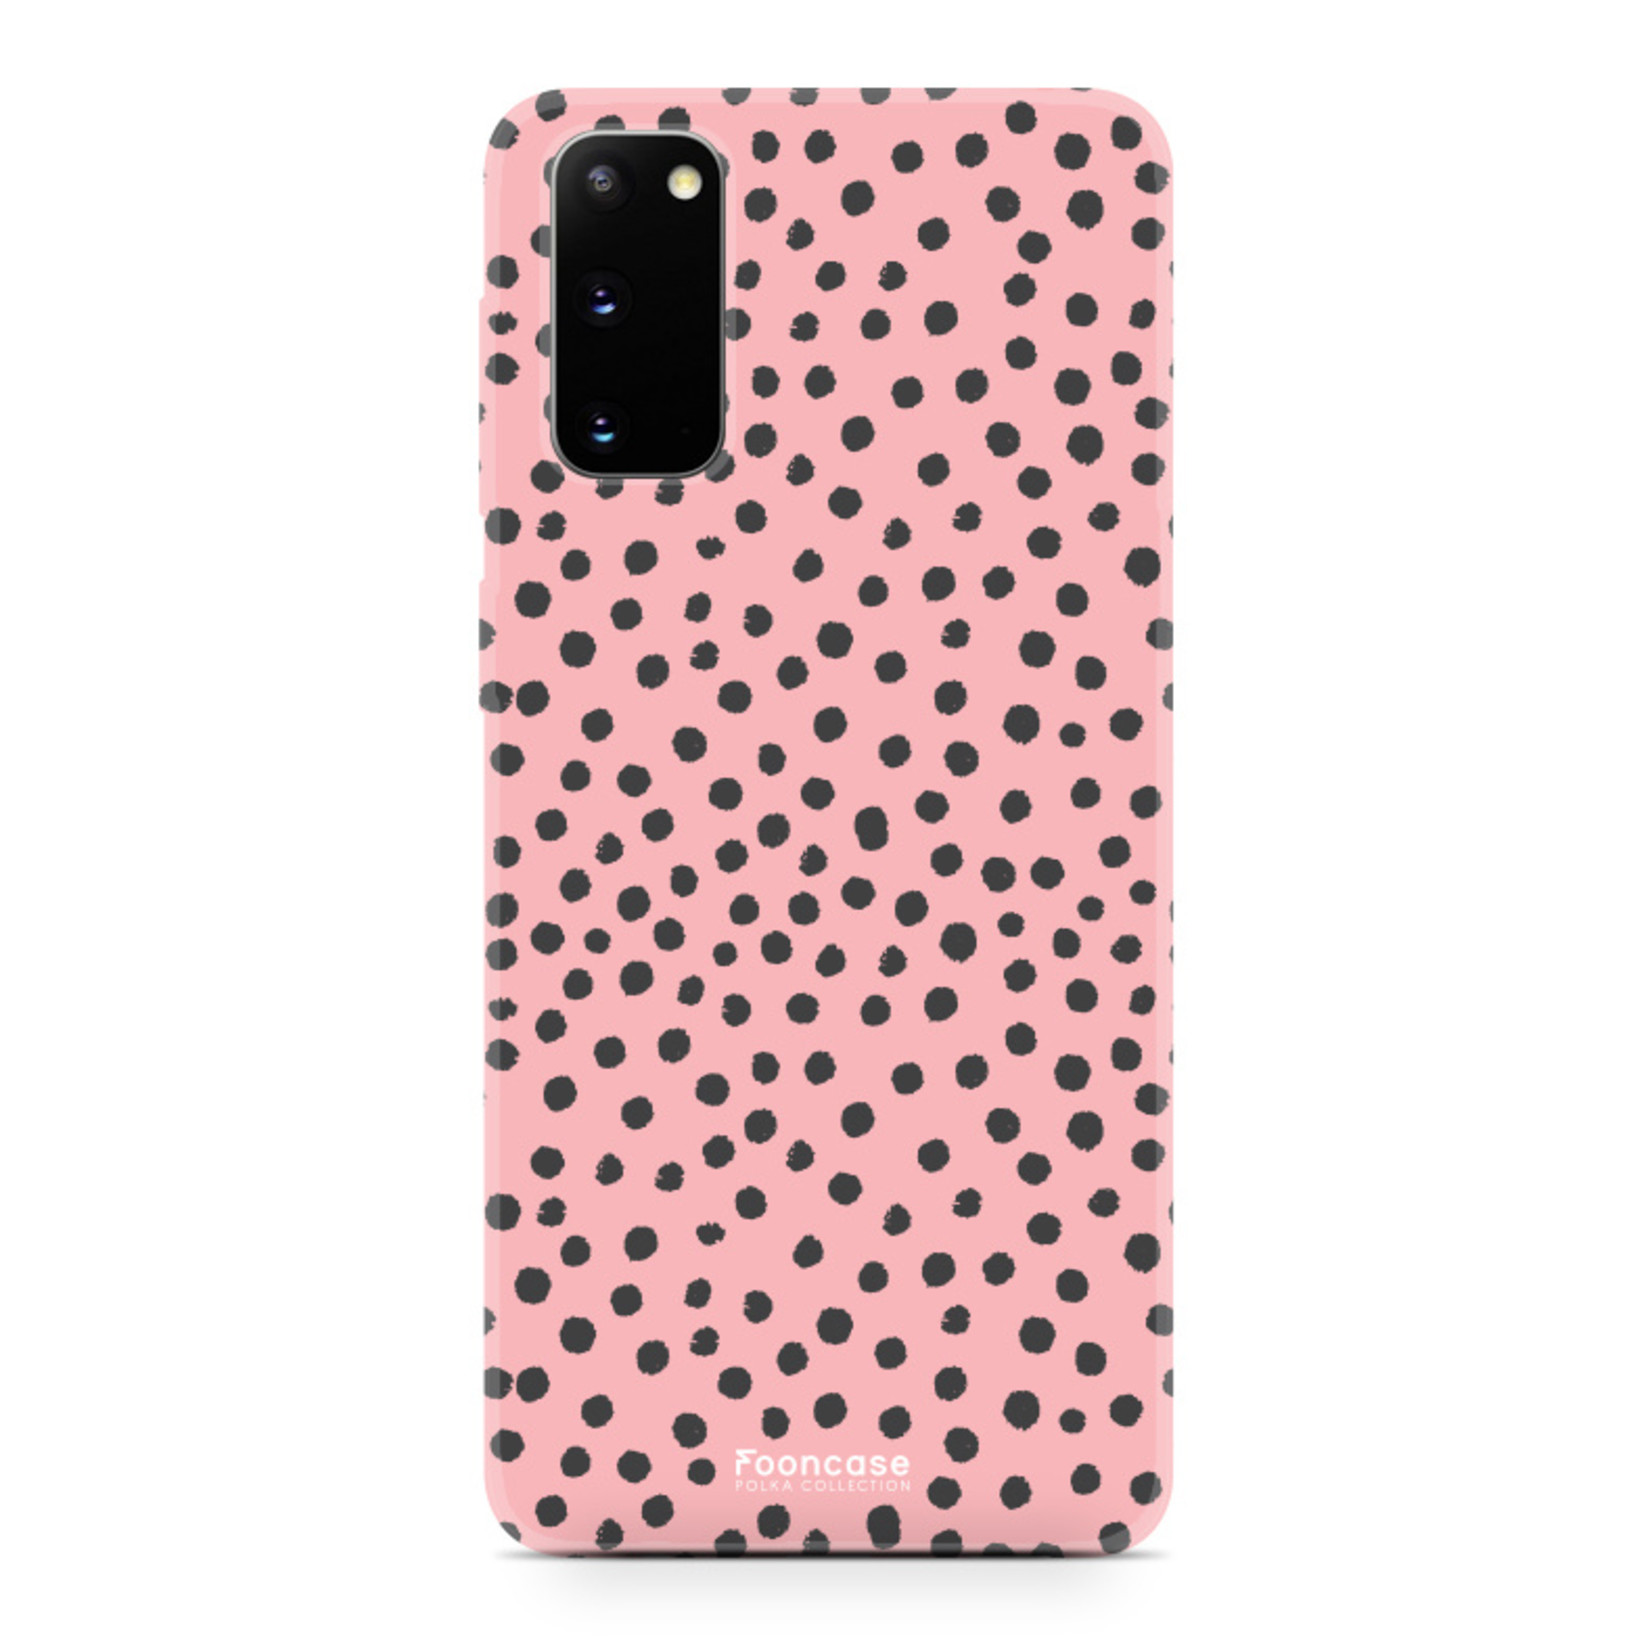 FOONCASE Samsung Galaxy S20 hoesje TPU Soft Case - Back Cover - POLKA COLLECTION / Stipjes / Stippen / Roze